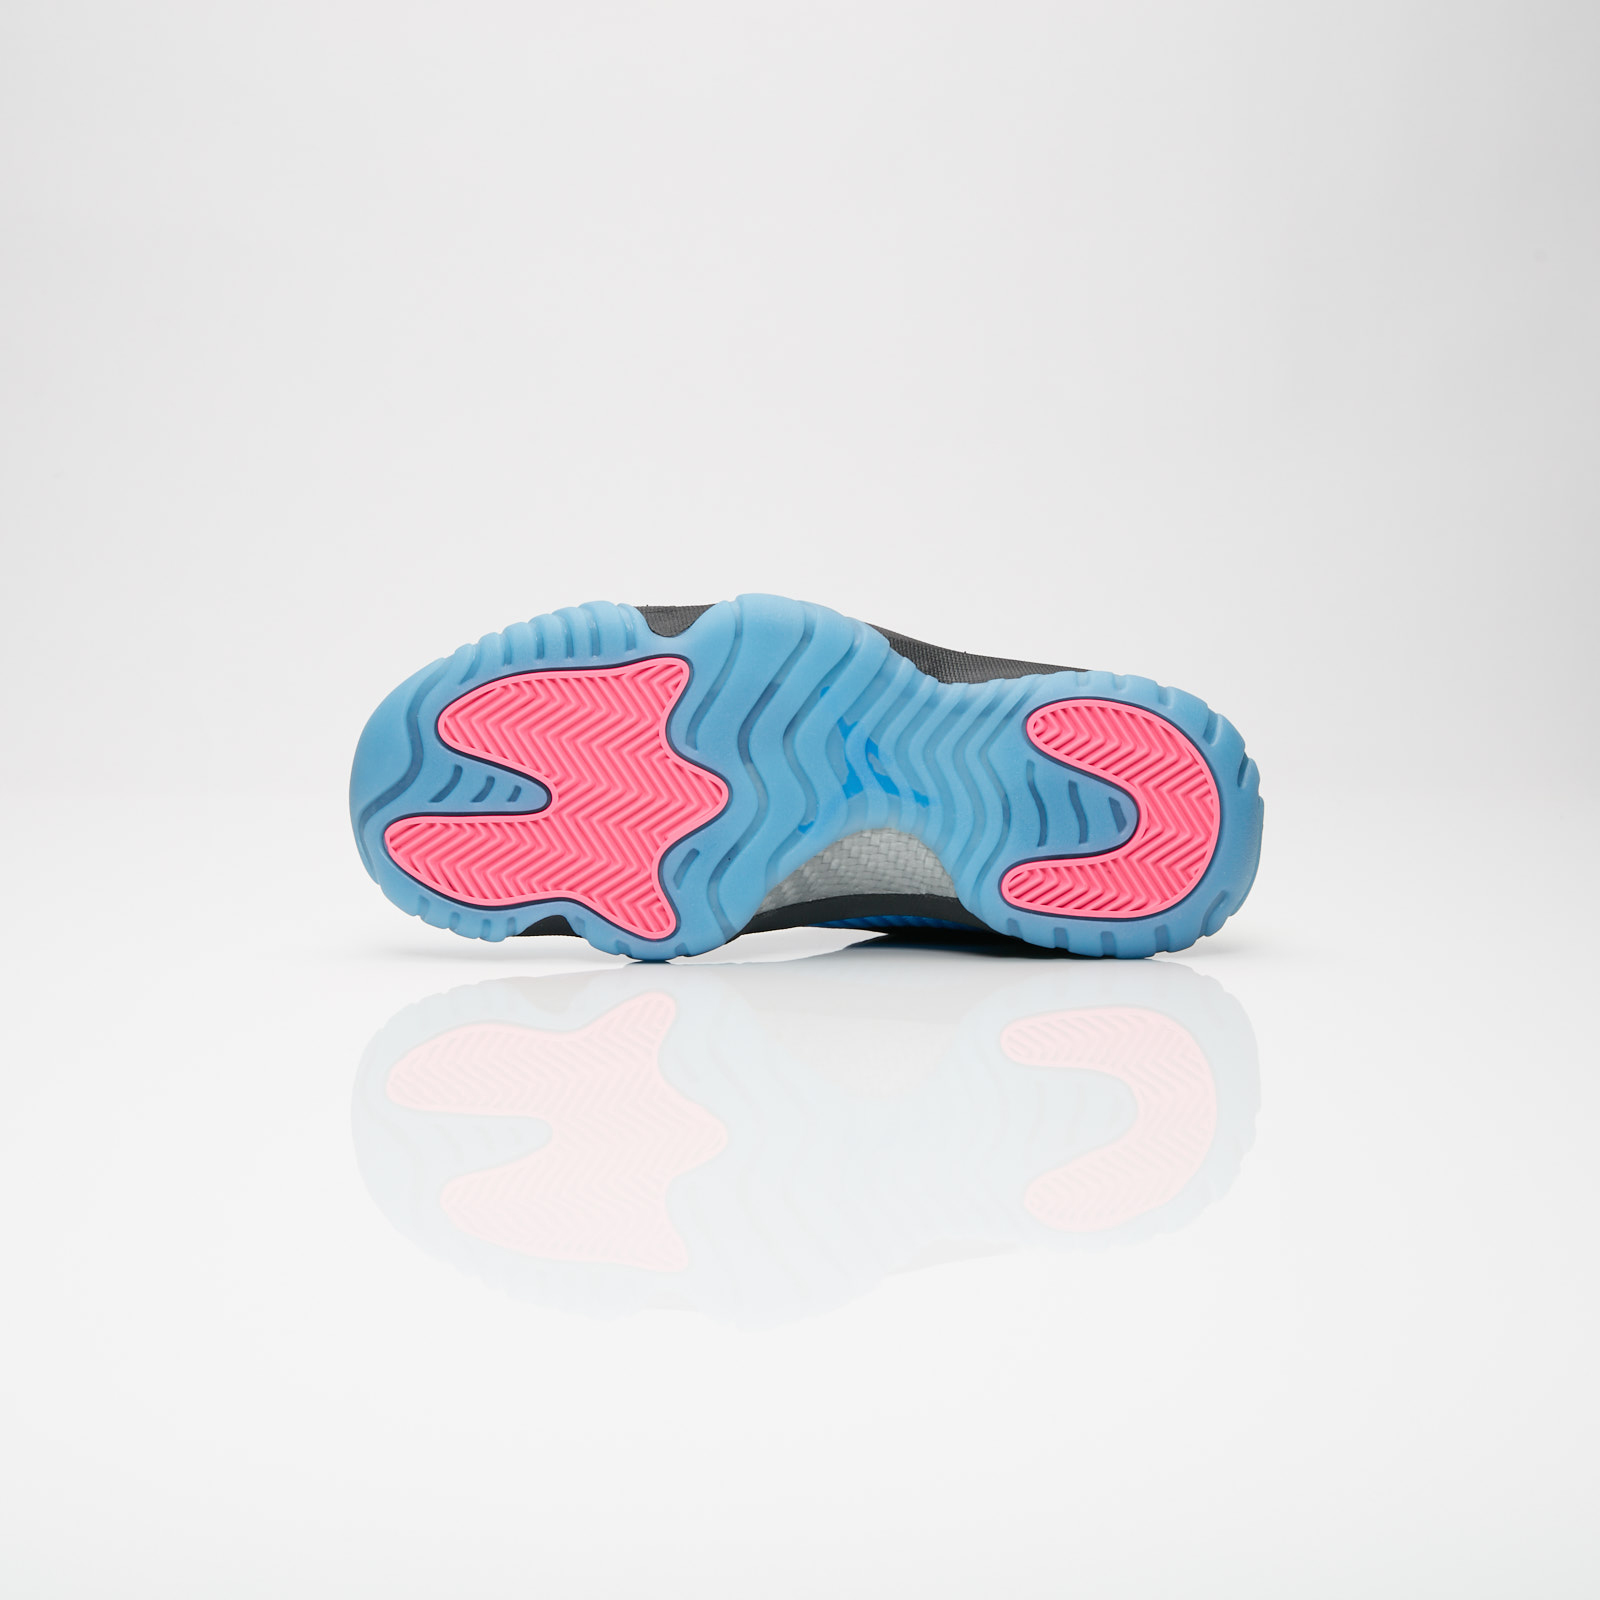 394ed11e6ad7de Jordan Brand Air Jordan Future Q54 GS - At9192-001 - Sneakersnstuff ...